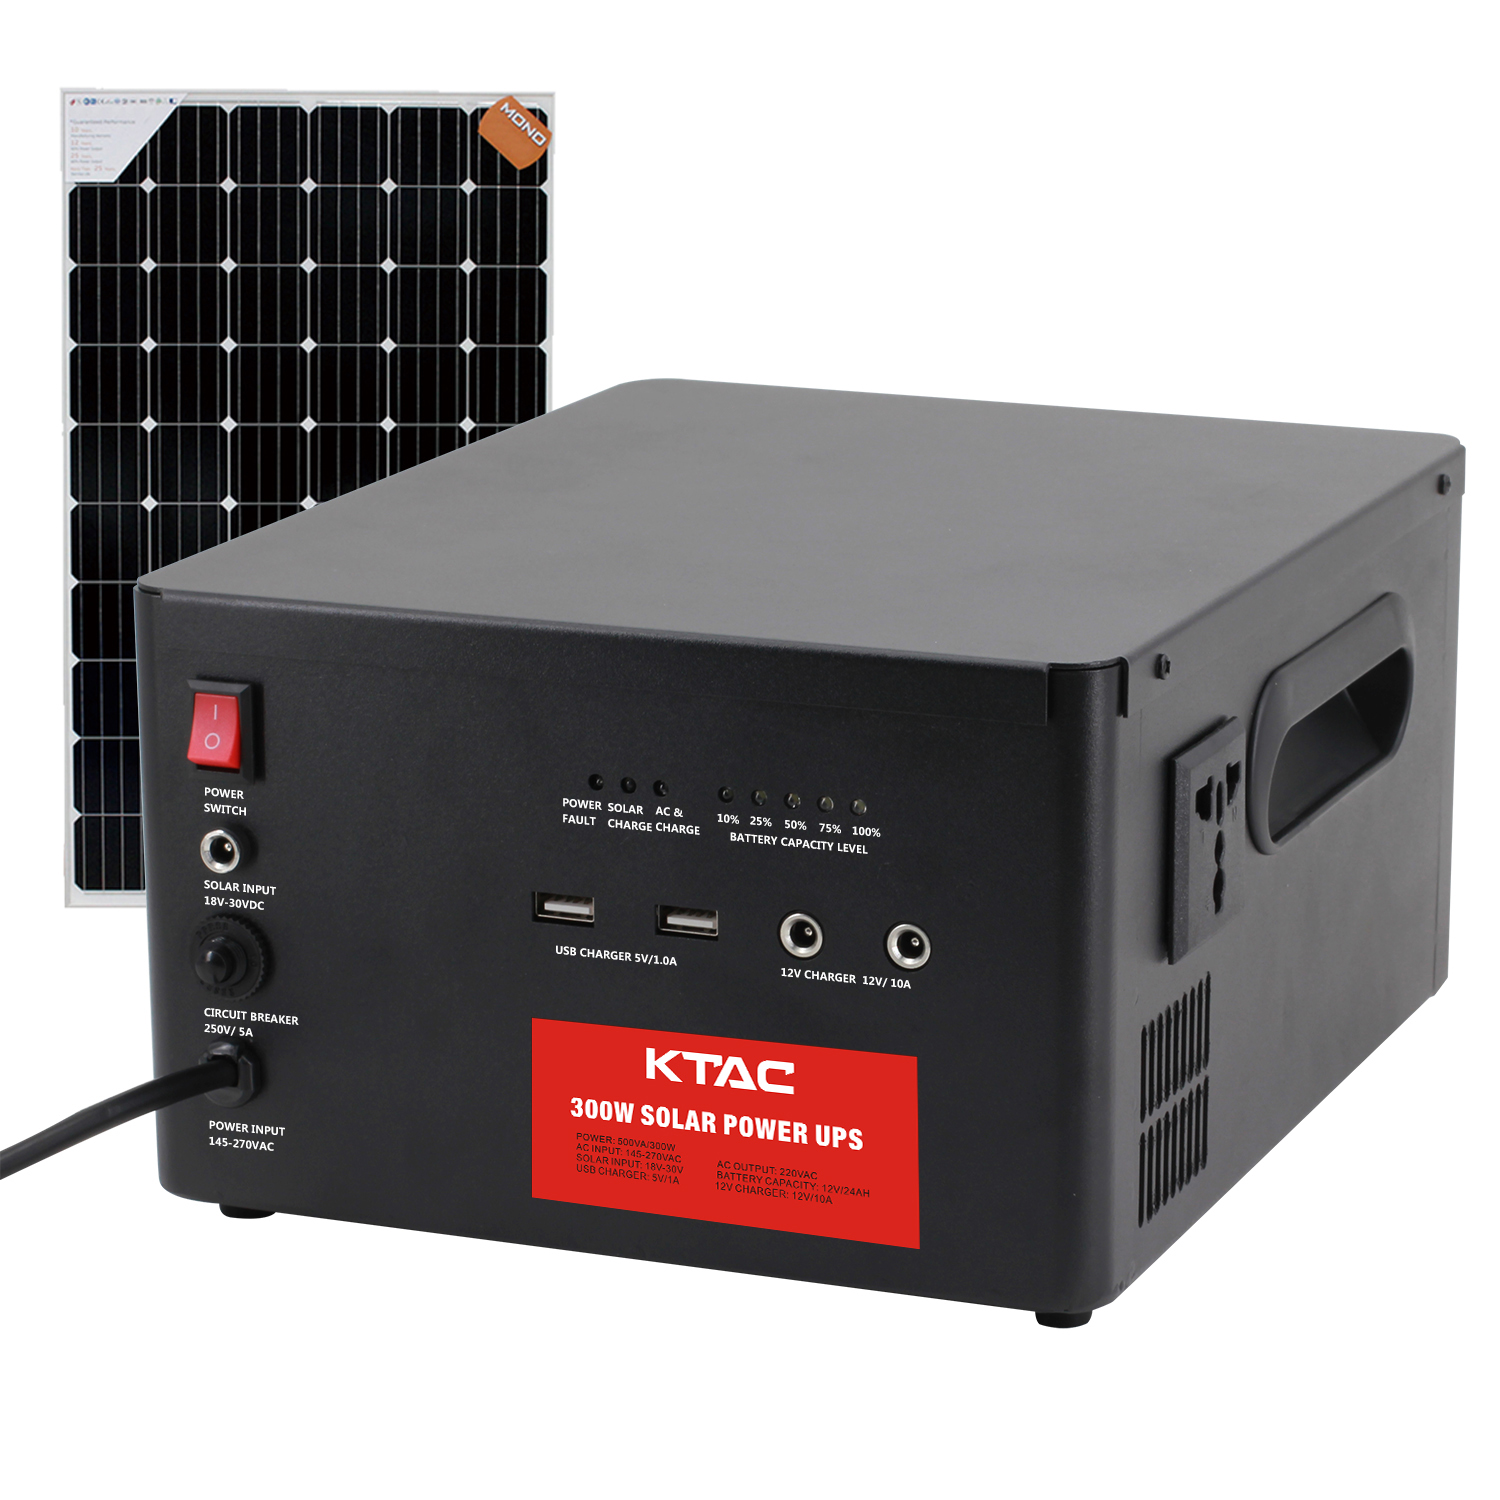 500VA solar UPS with built in battery USB charger and 12V DC charger